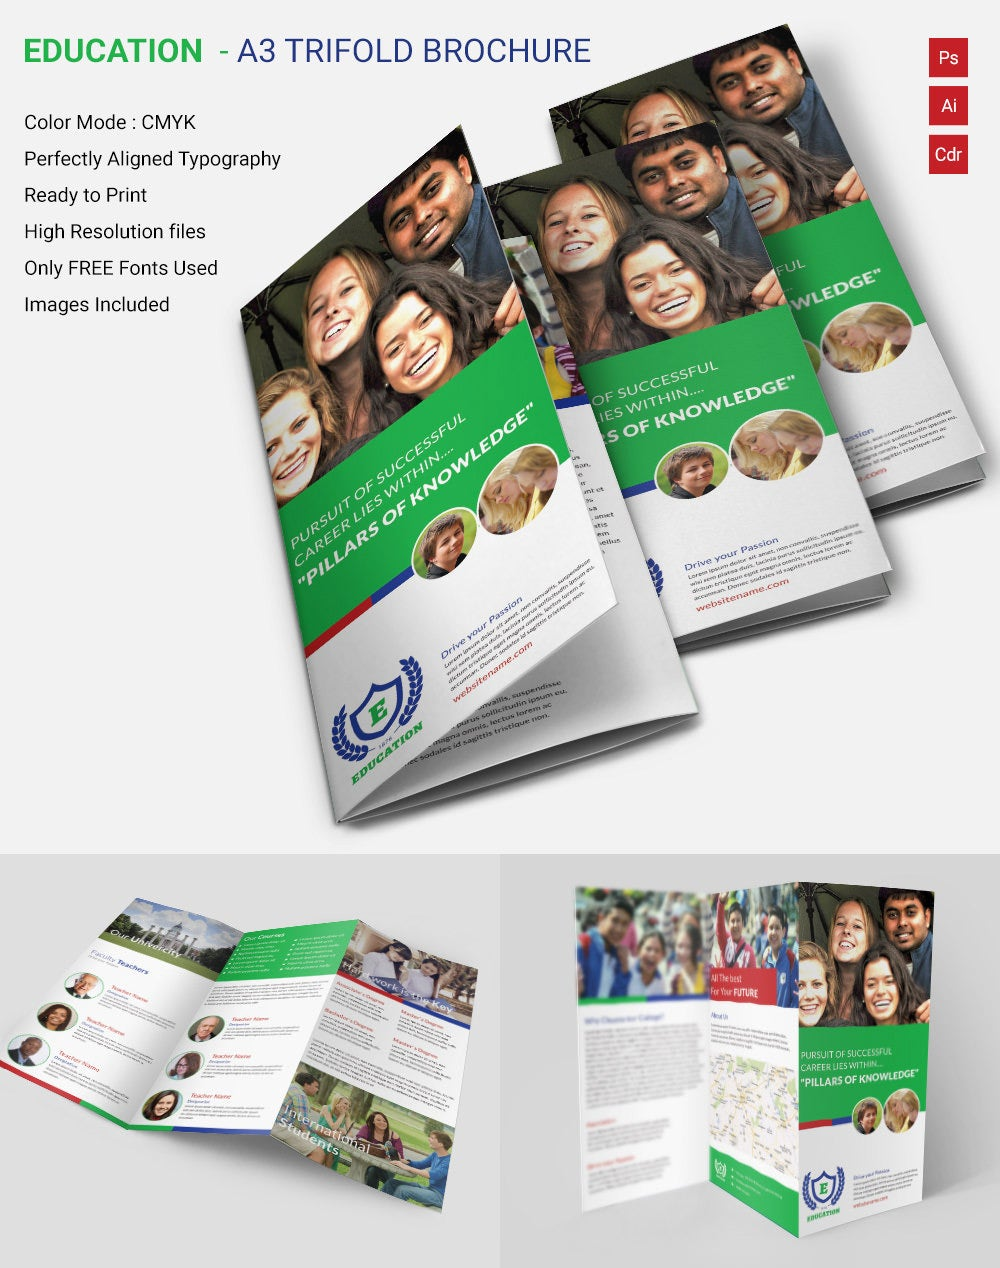 19 school brochure psd templates designs free for Tri fold school brochure template